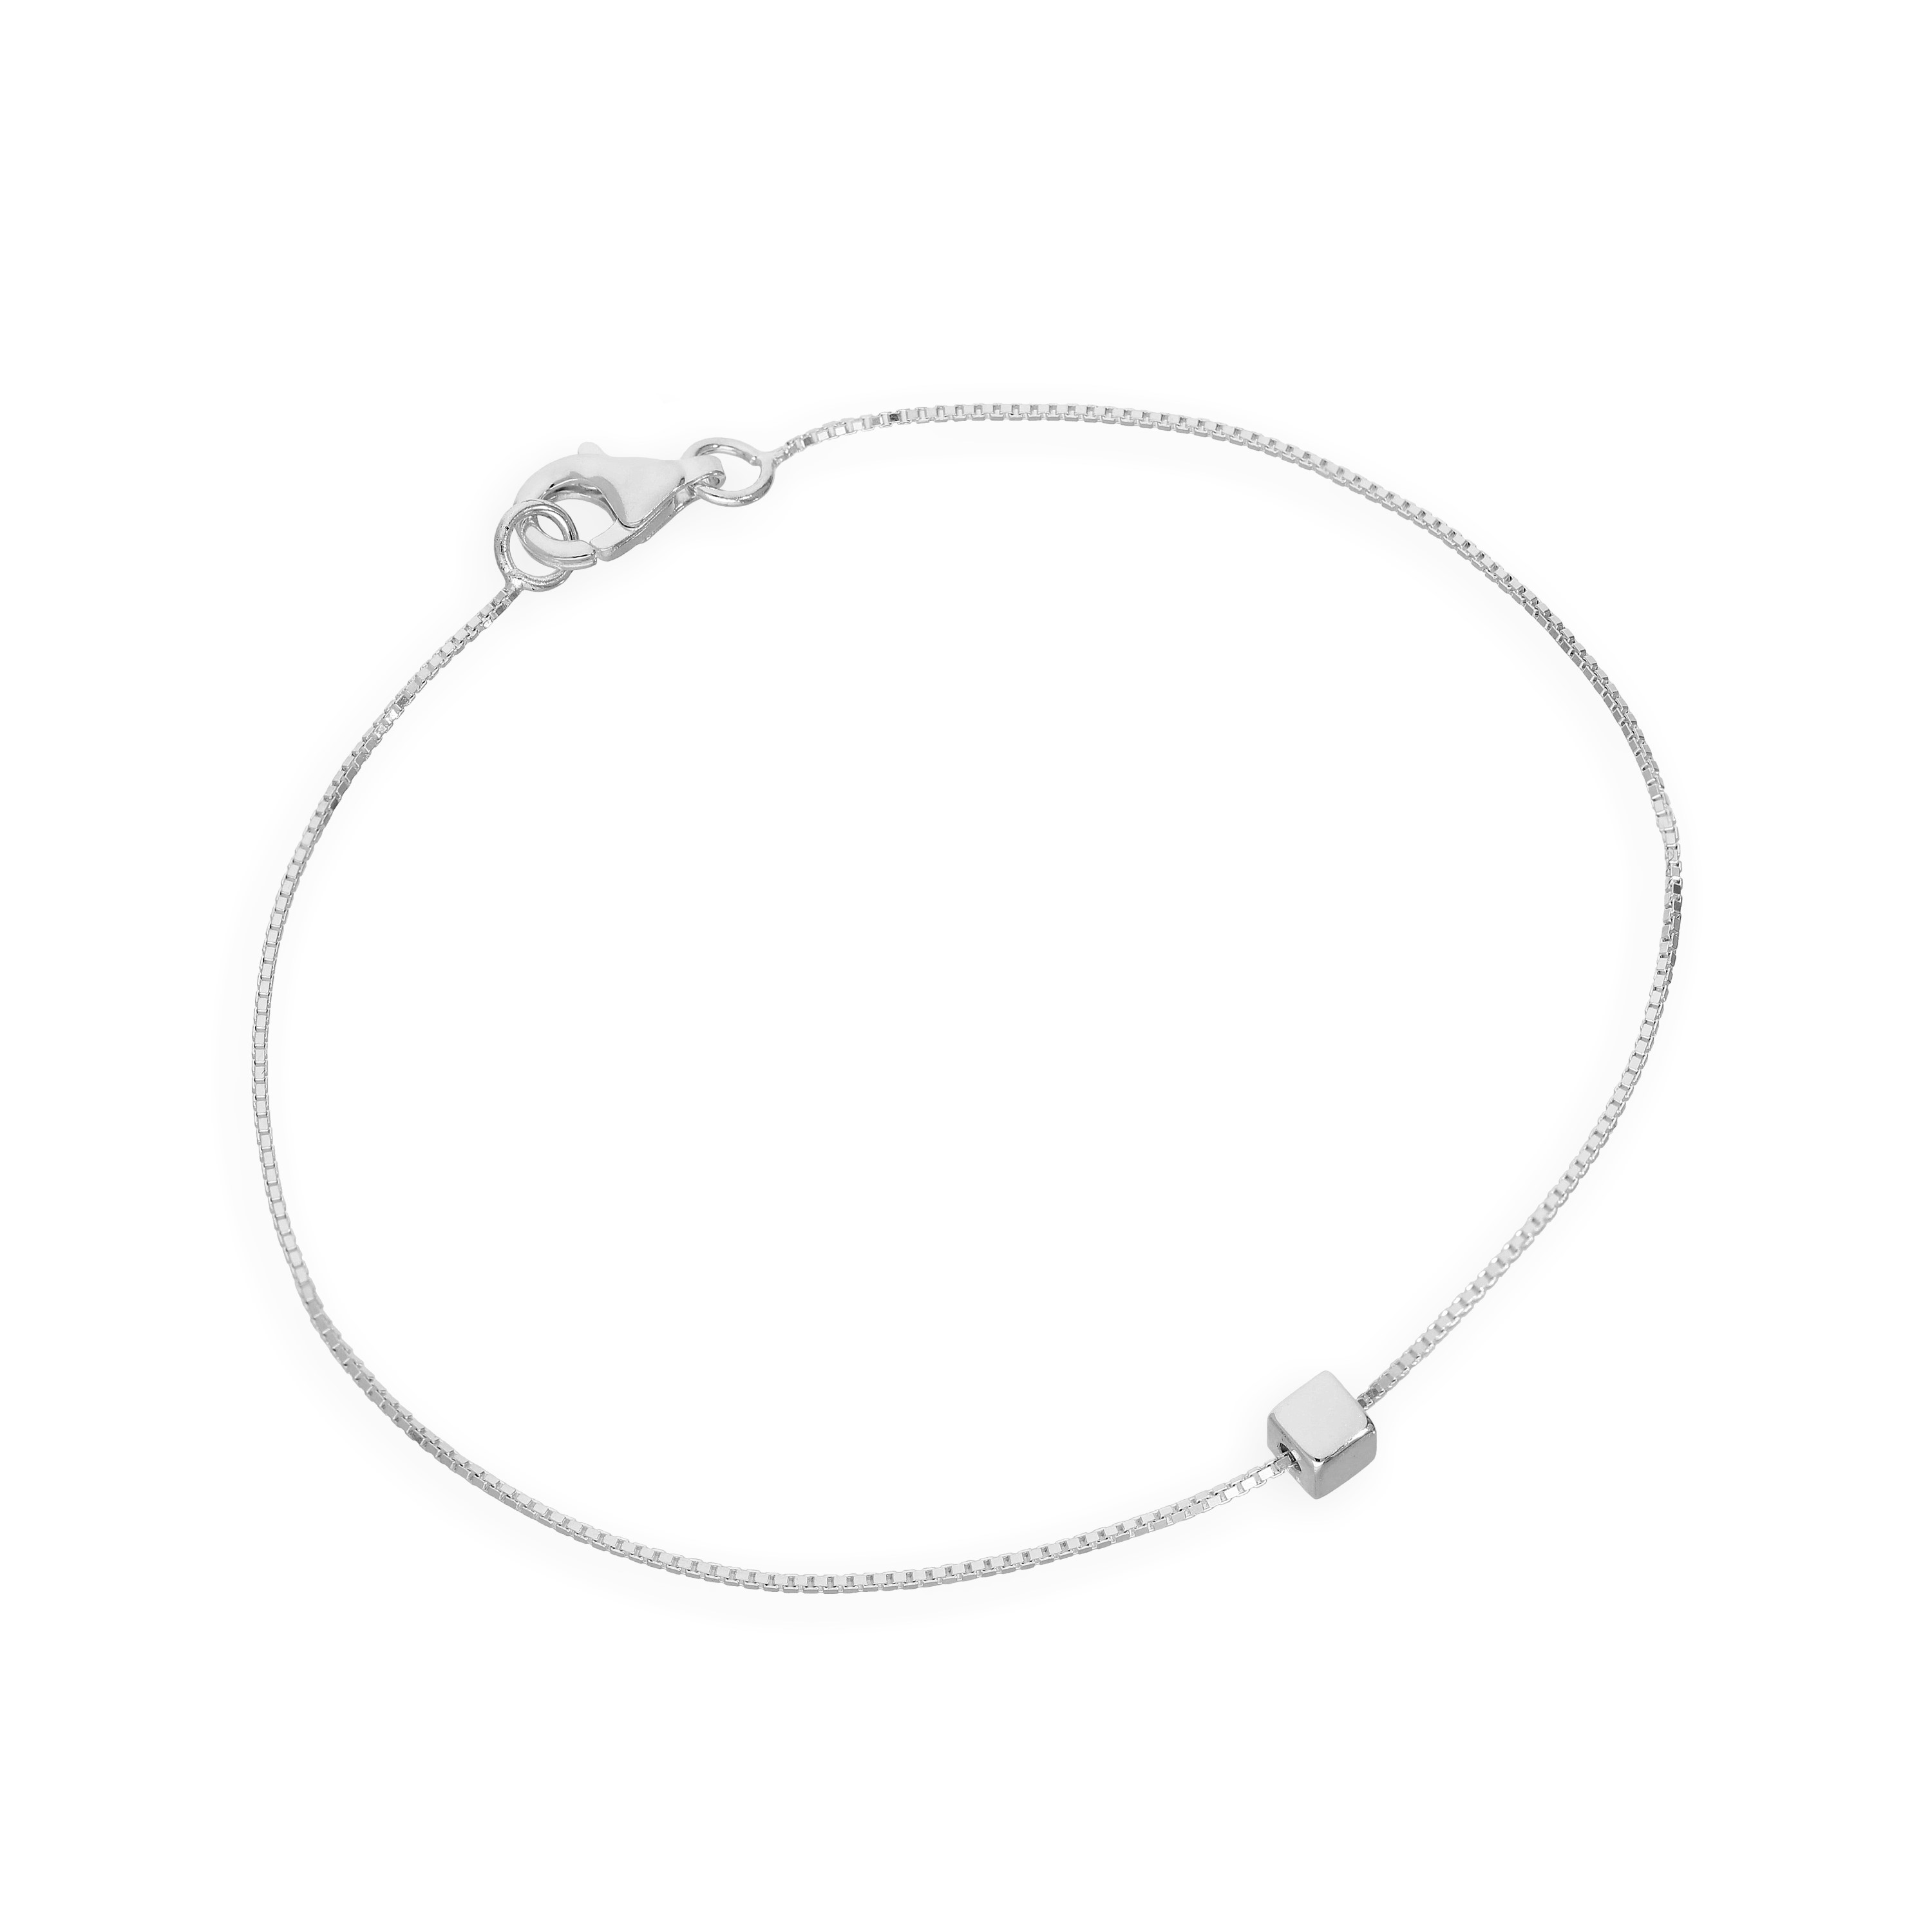 0bc2cf084927f Details about Real 925 Sterling Silver 7 Inch Box Chain Bracelet w Cube  Bead Square Box